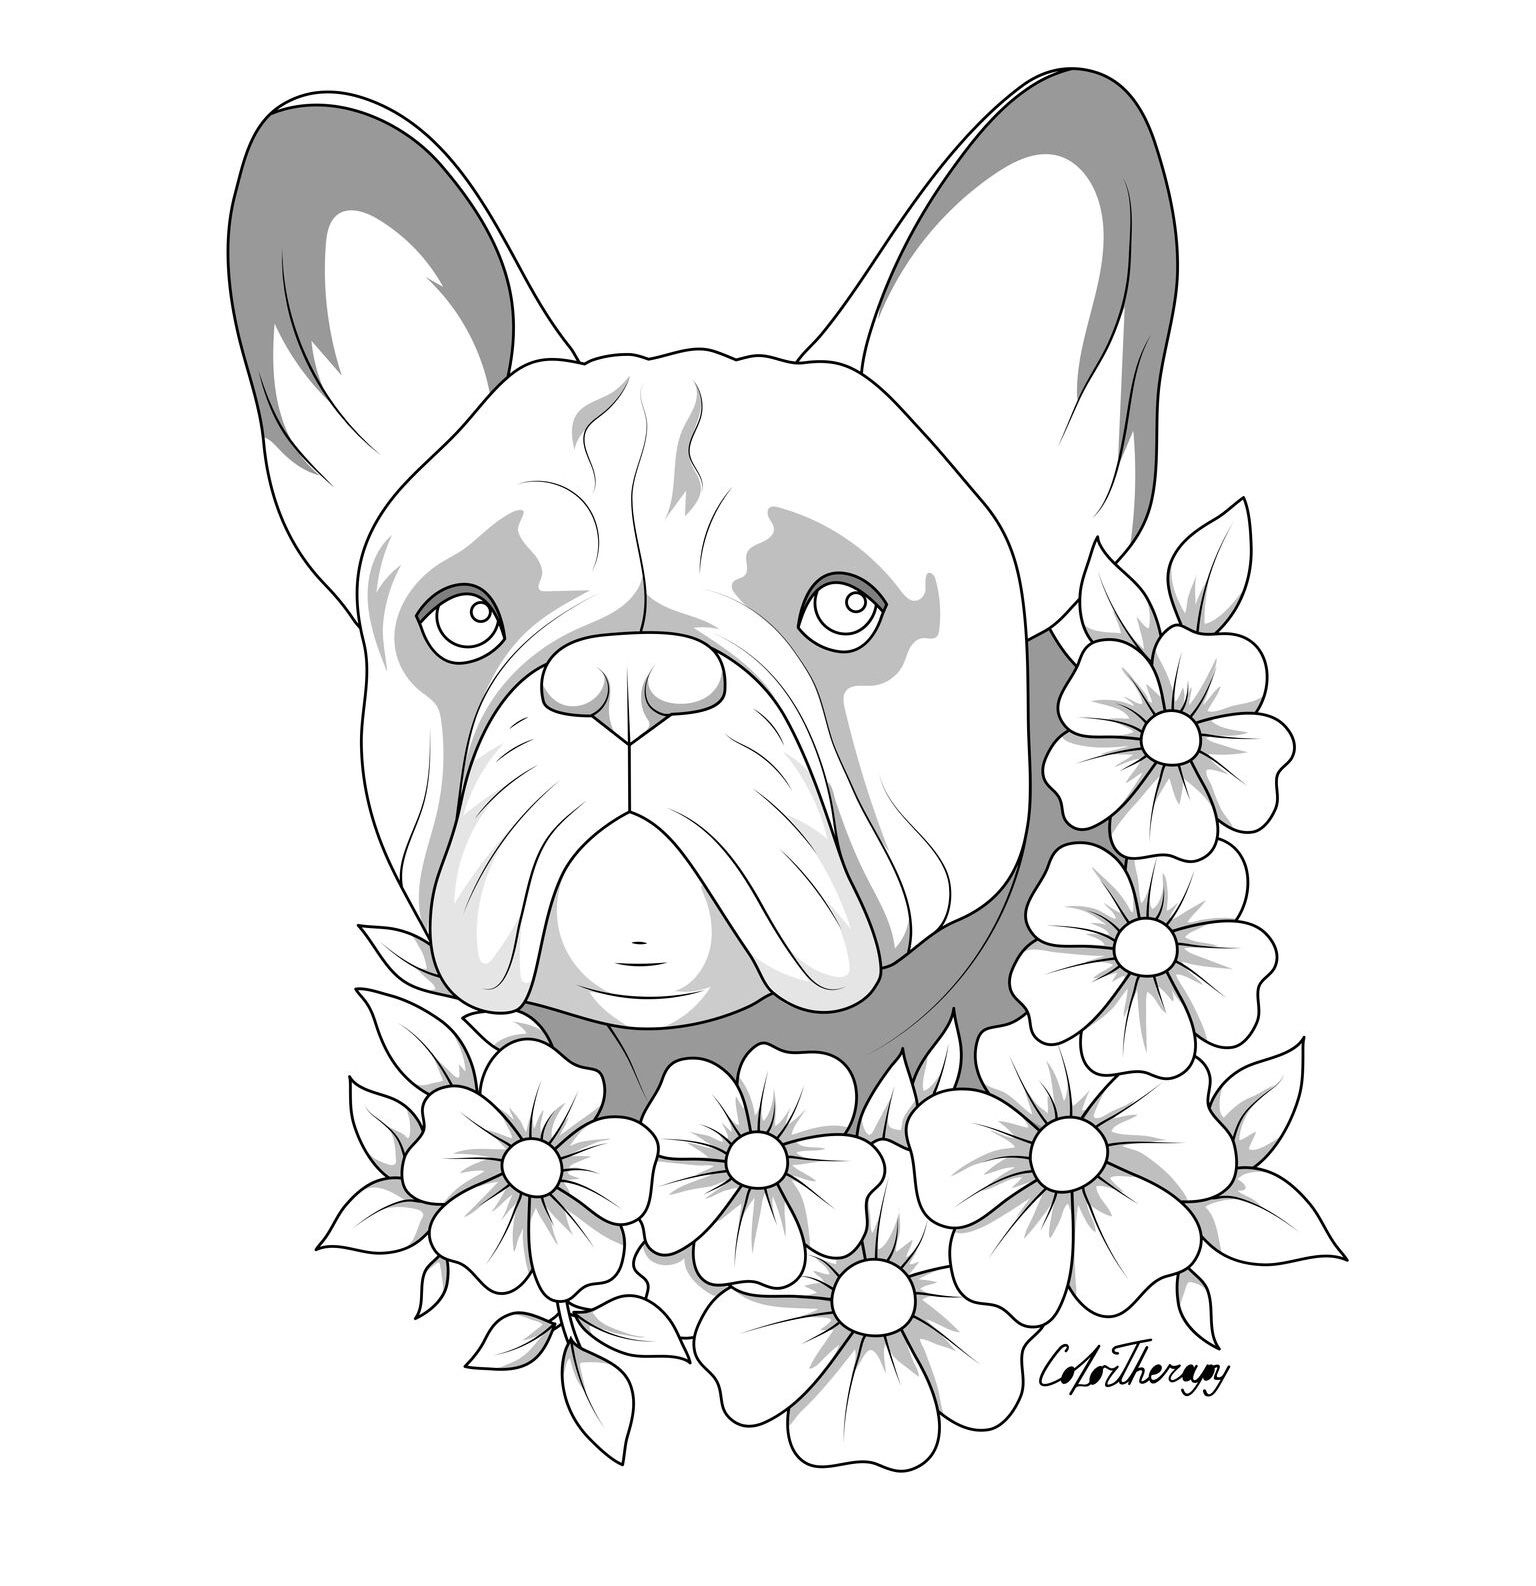 The Sneakpeek For The Next Gift Of The Day Tomorrow Do You Like This One French Bulldog Floral Dog Coloring Page Bulldog Drawing Horse Coloring Pages